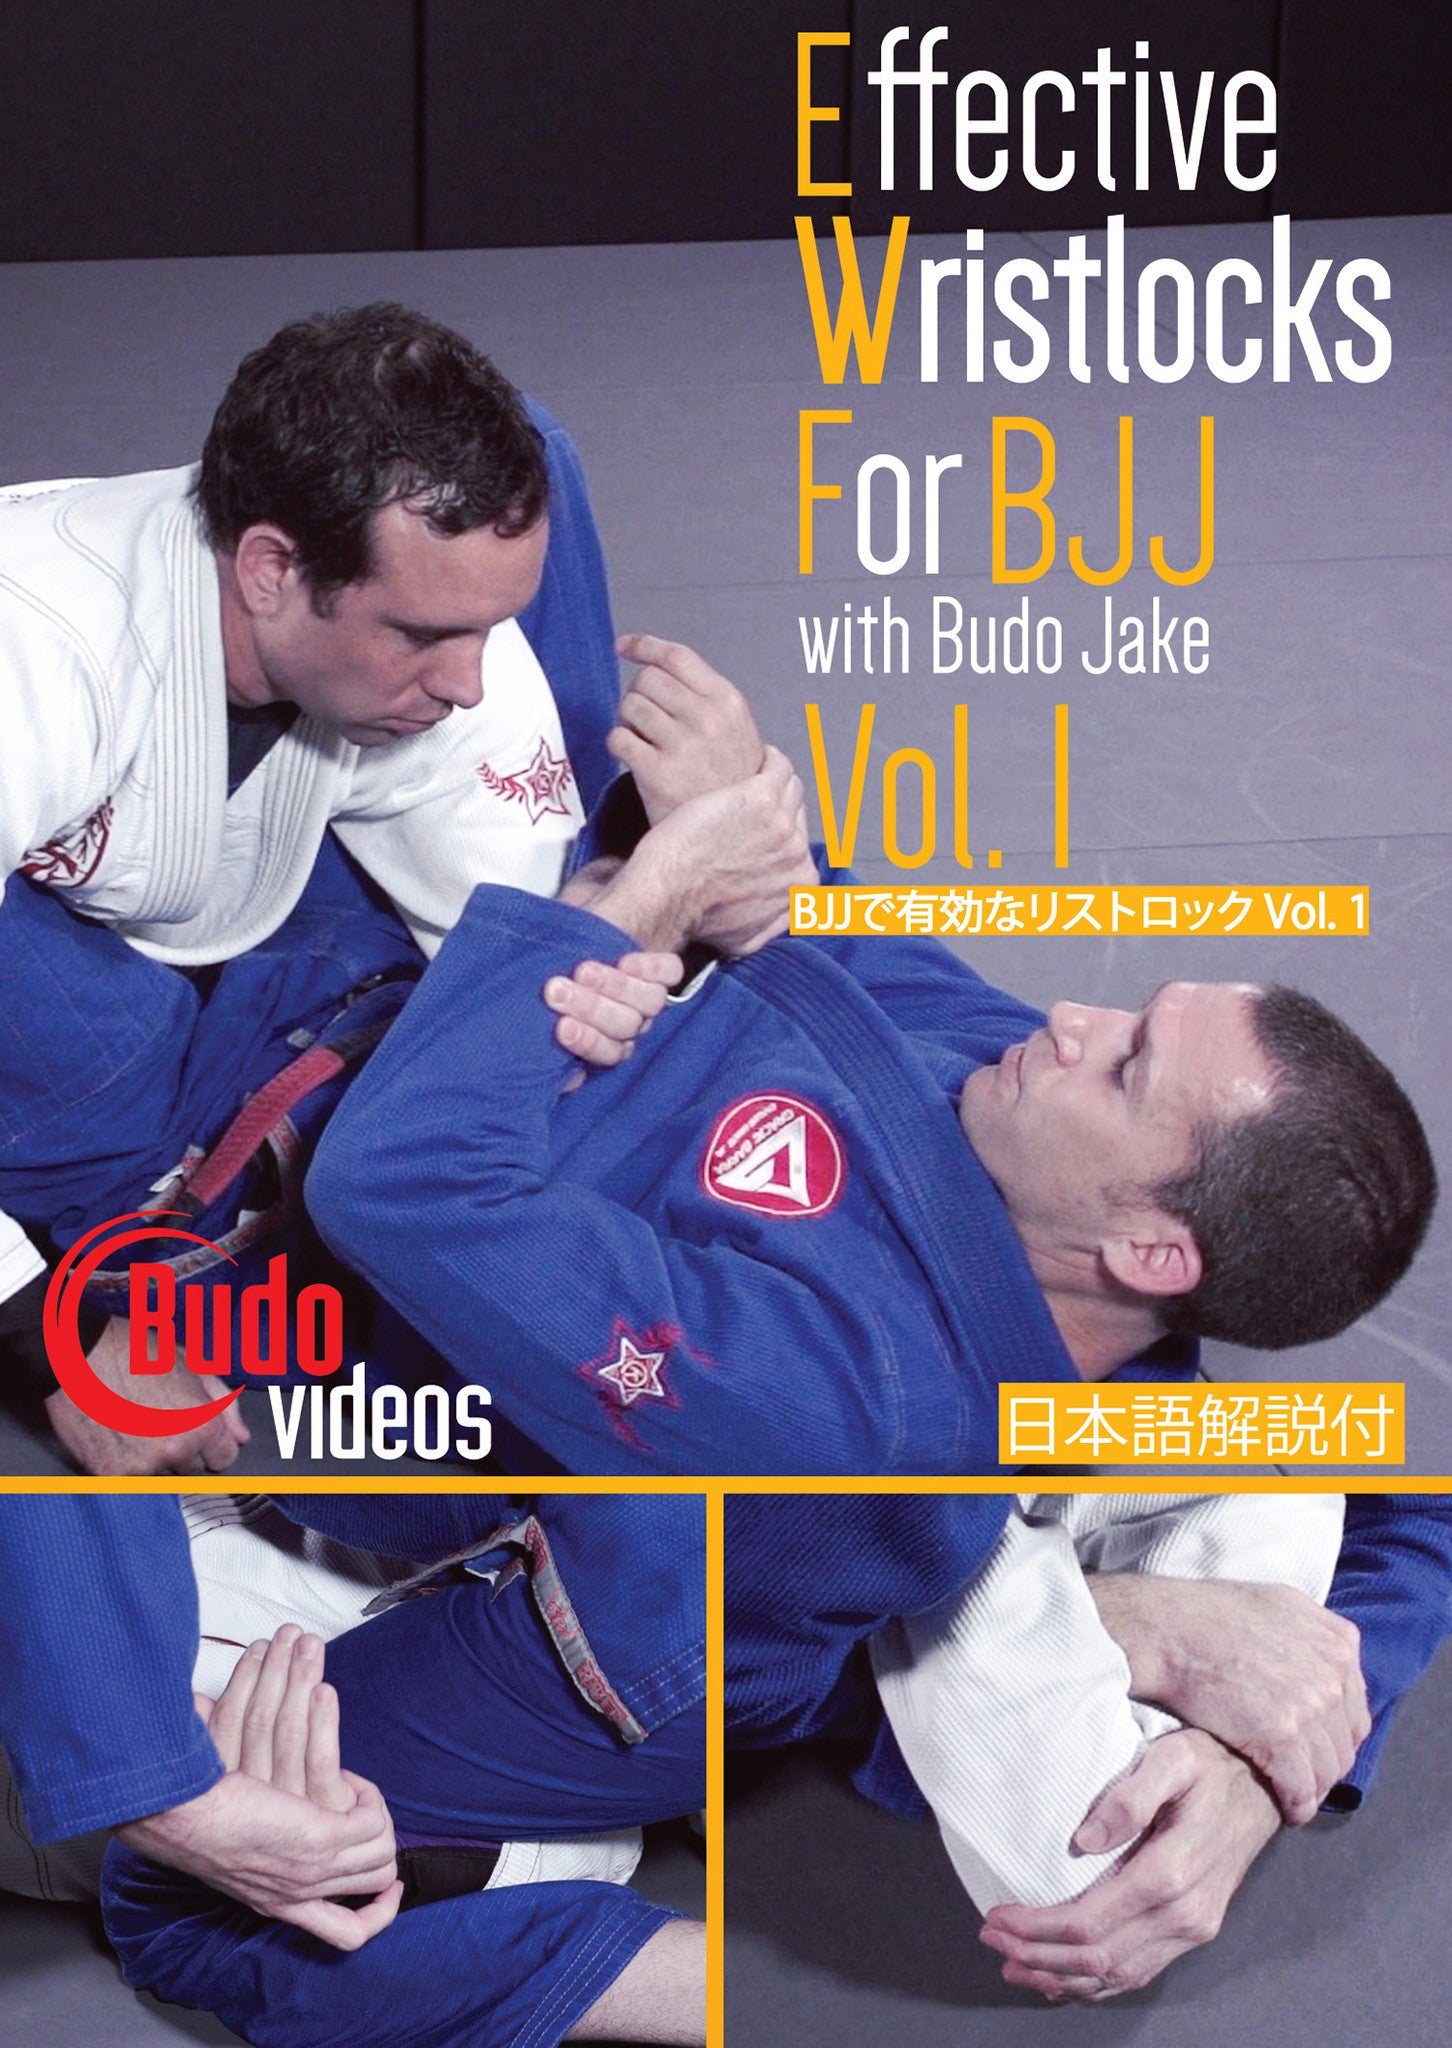 Effective Wristlocks for BJJ Vol 1 DVD by Budo Jake